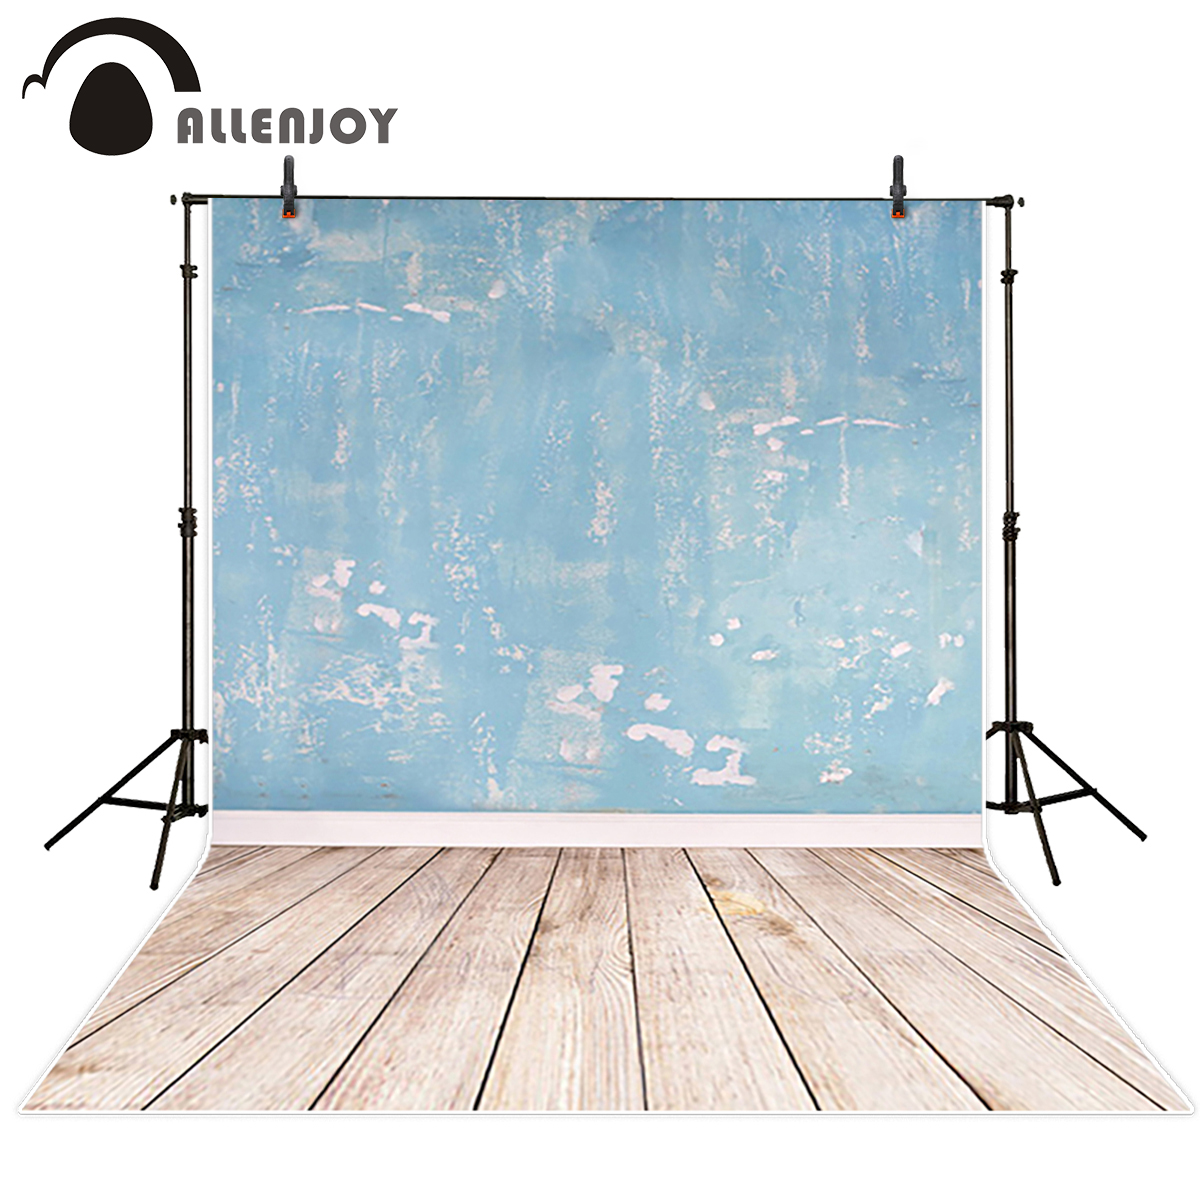 Allenjoy wall paper Photo background Blue distressed mottled walls photocall Vinyl photography backdrops photo studio allenjoy photography backdrops floor mosaic school blackboard kids vinyl photocall photographic studio computer printing lovely